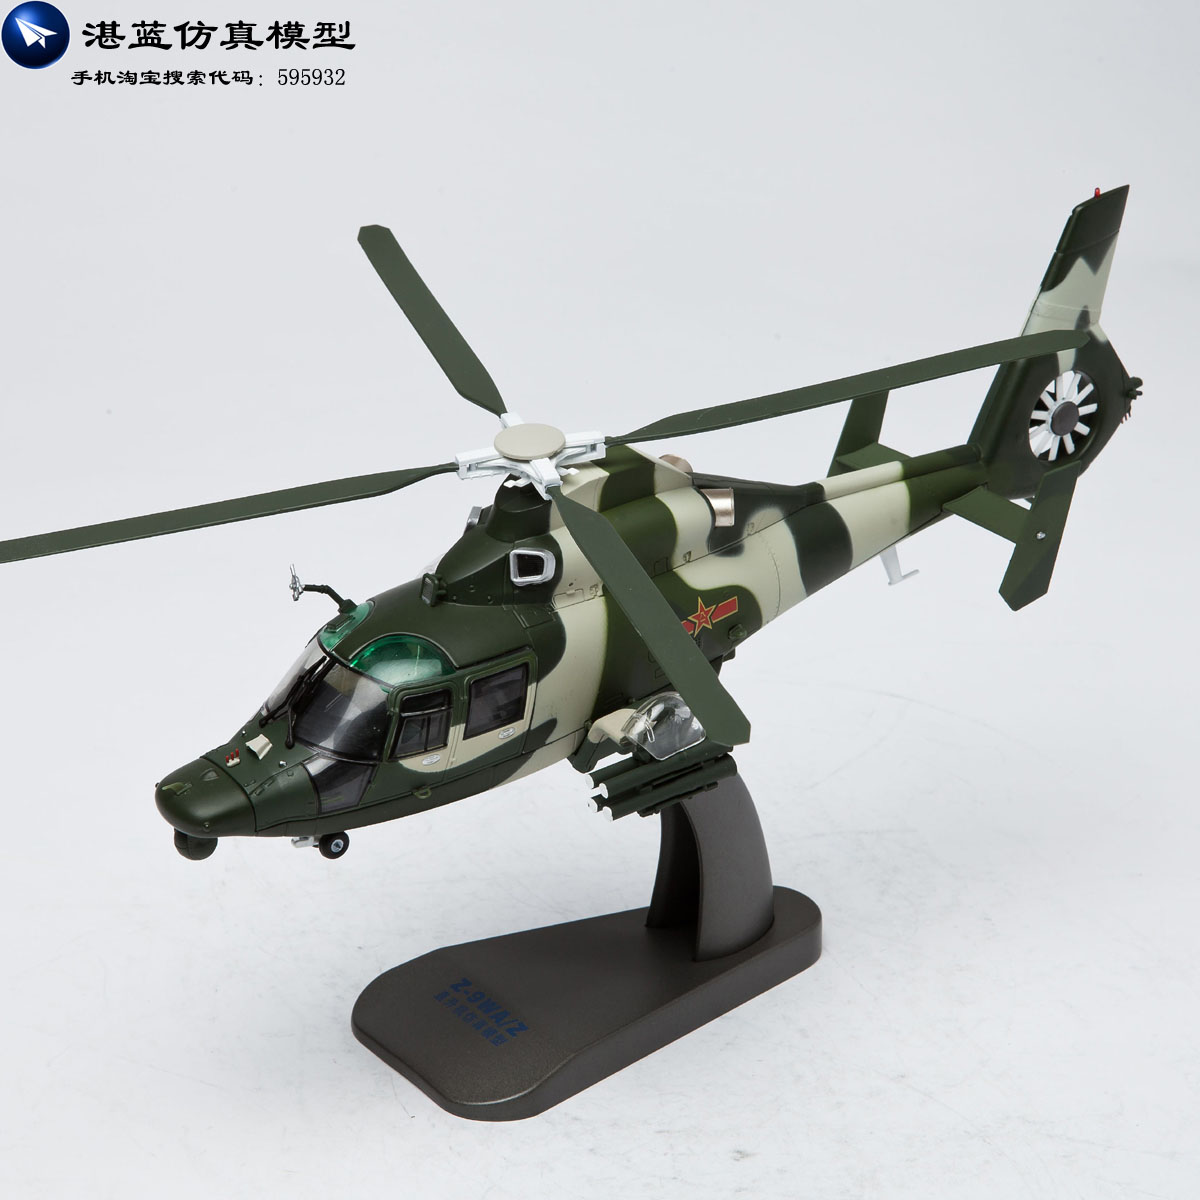 YJ 1/48 Scale Military Model Toys HAMC Z-9/Harbin Z-9 Military Helicopter Diecast Metal Plane Model Toy For Collection/Gift 1 6 scale military accessories toy model wwii german metal